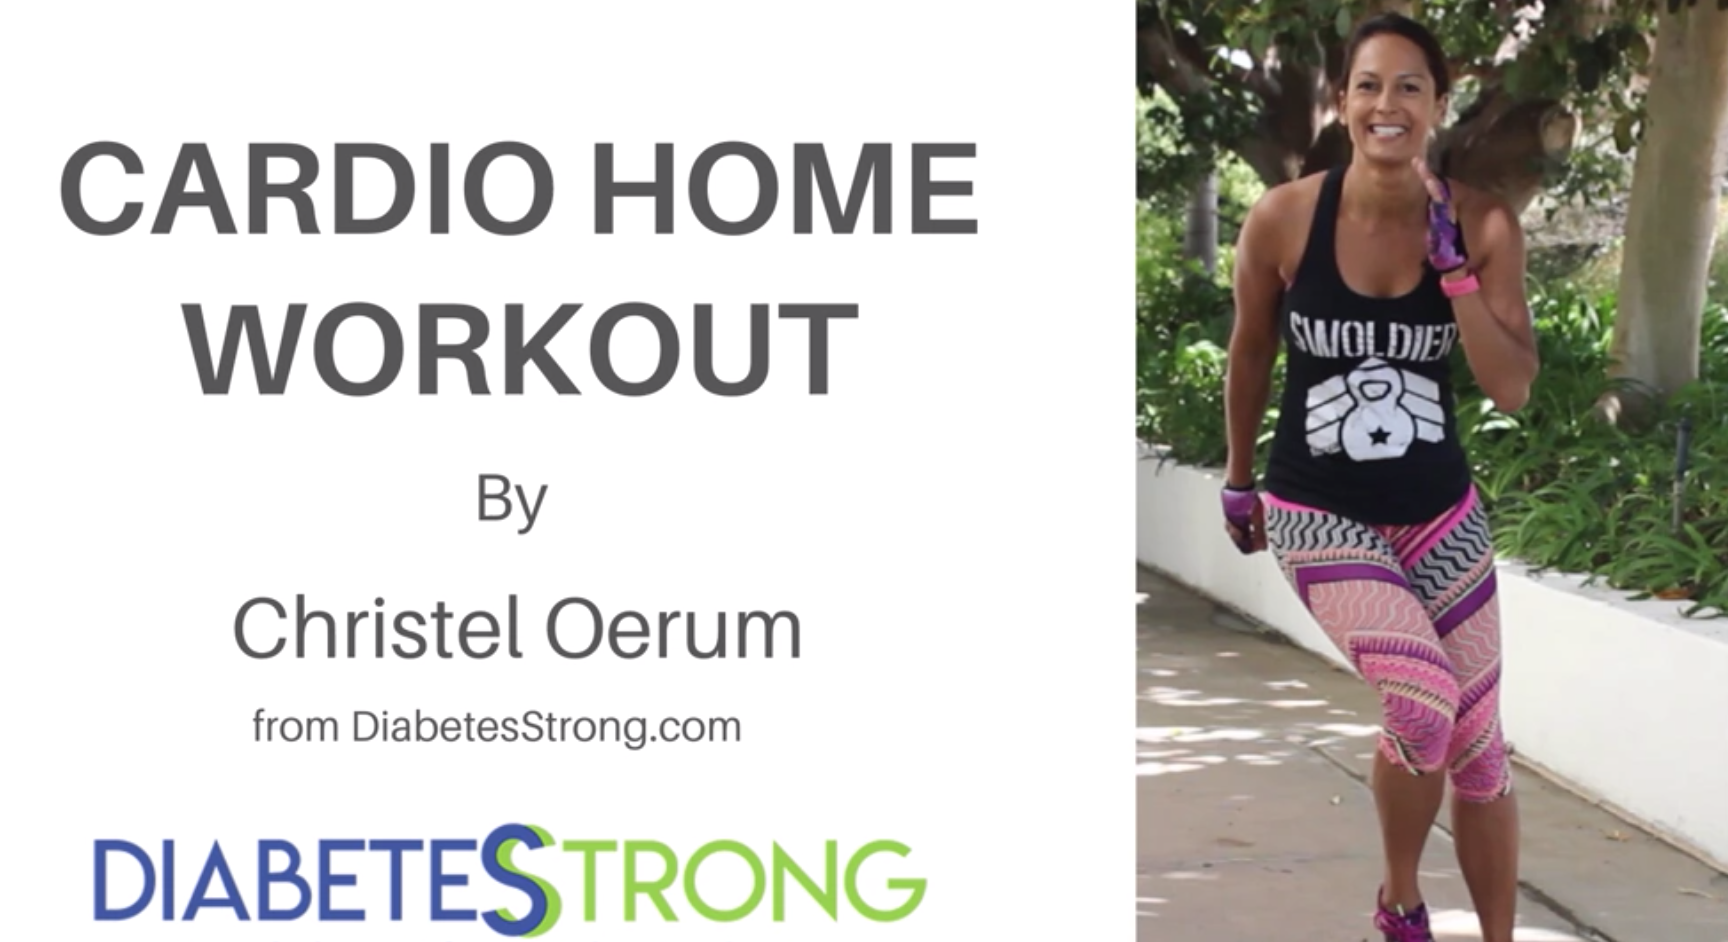 Cardio Home Workout from Diabetes Strong